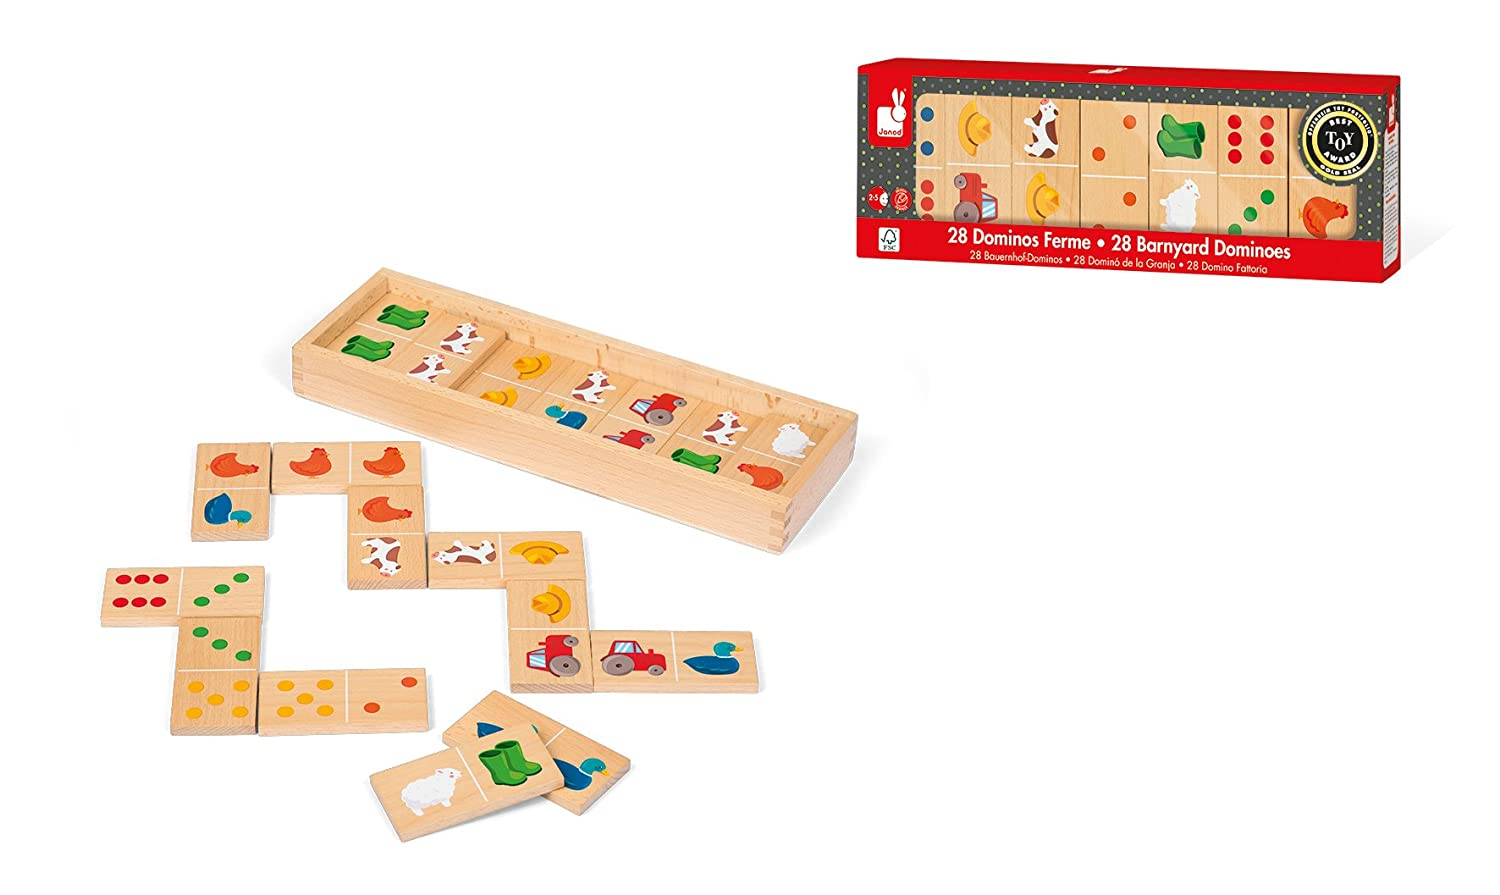 Amazon.com: Janod Dominos: Toys & Games